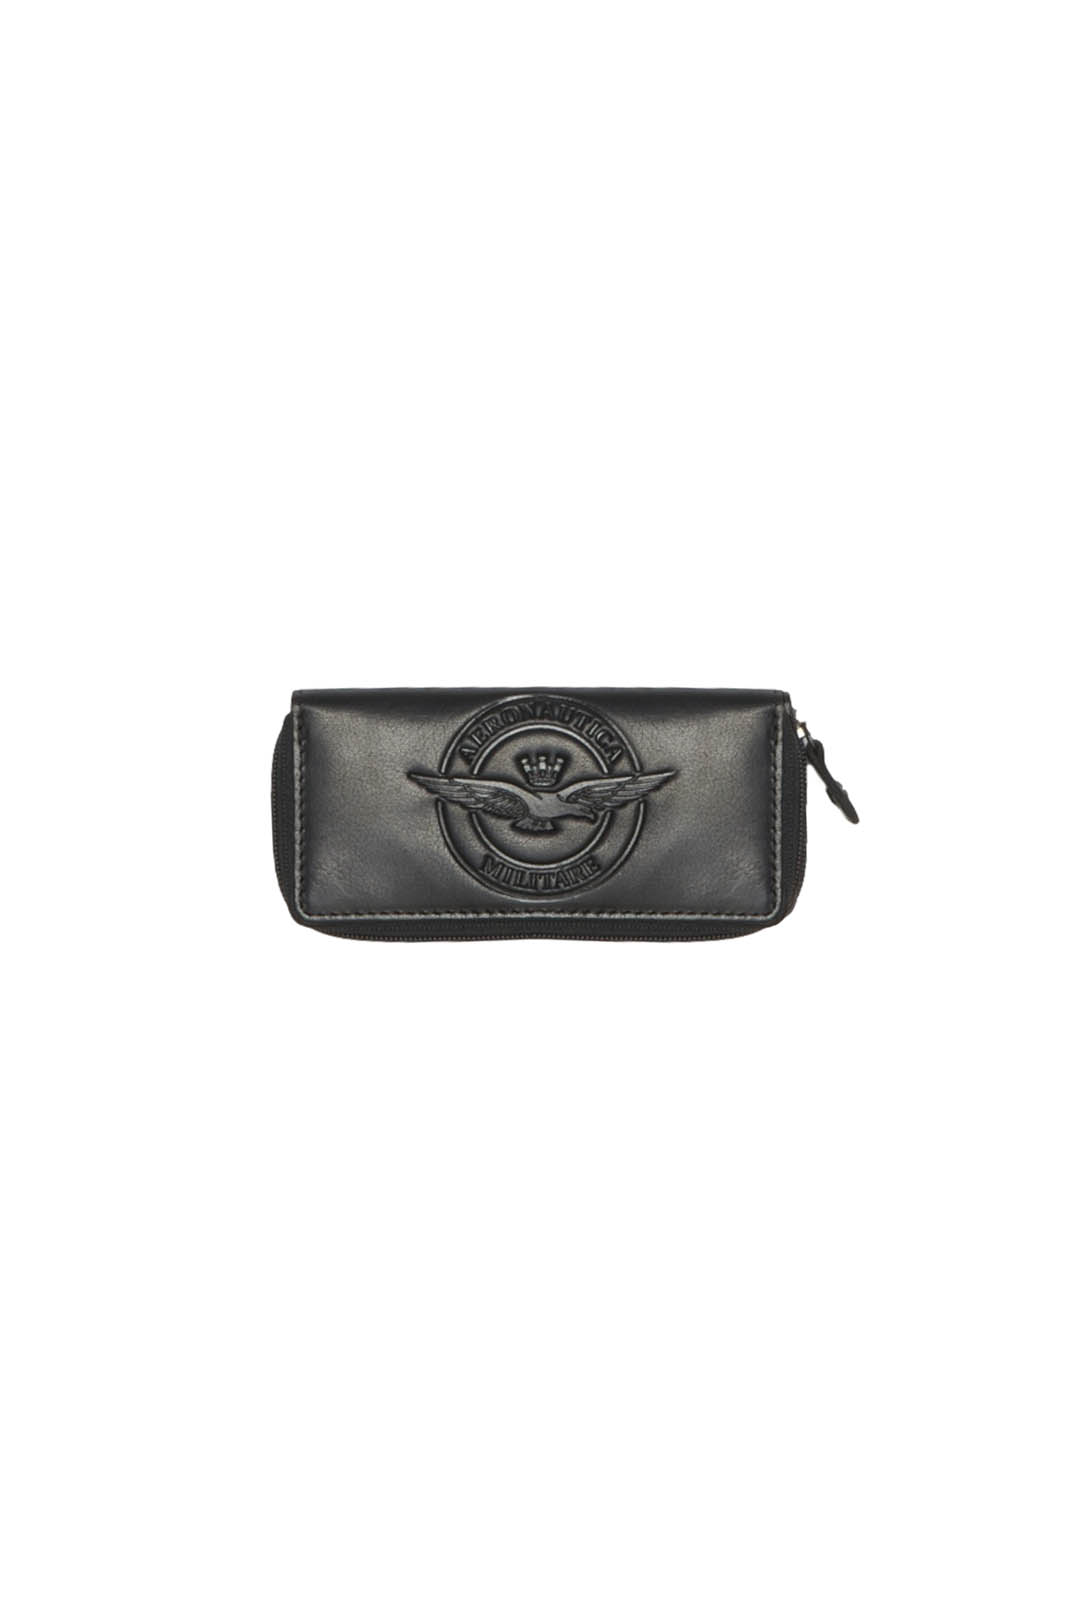 Zipped leather key pouch                 1